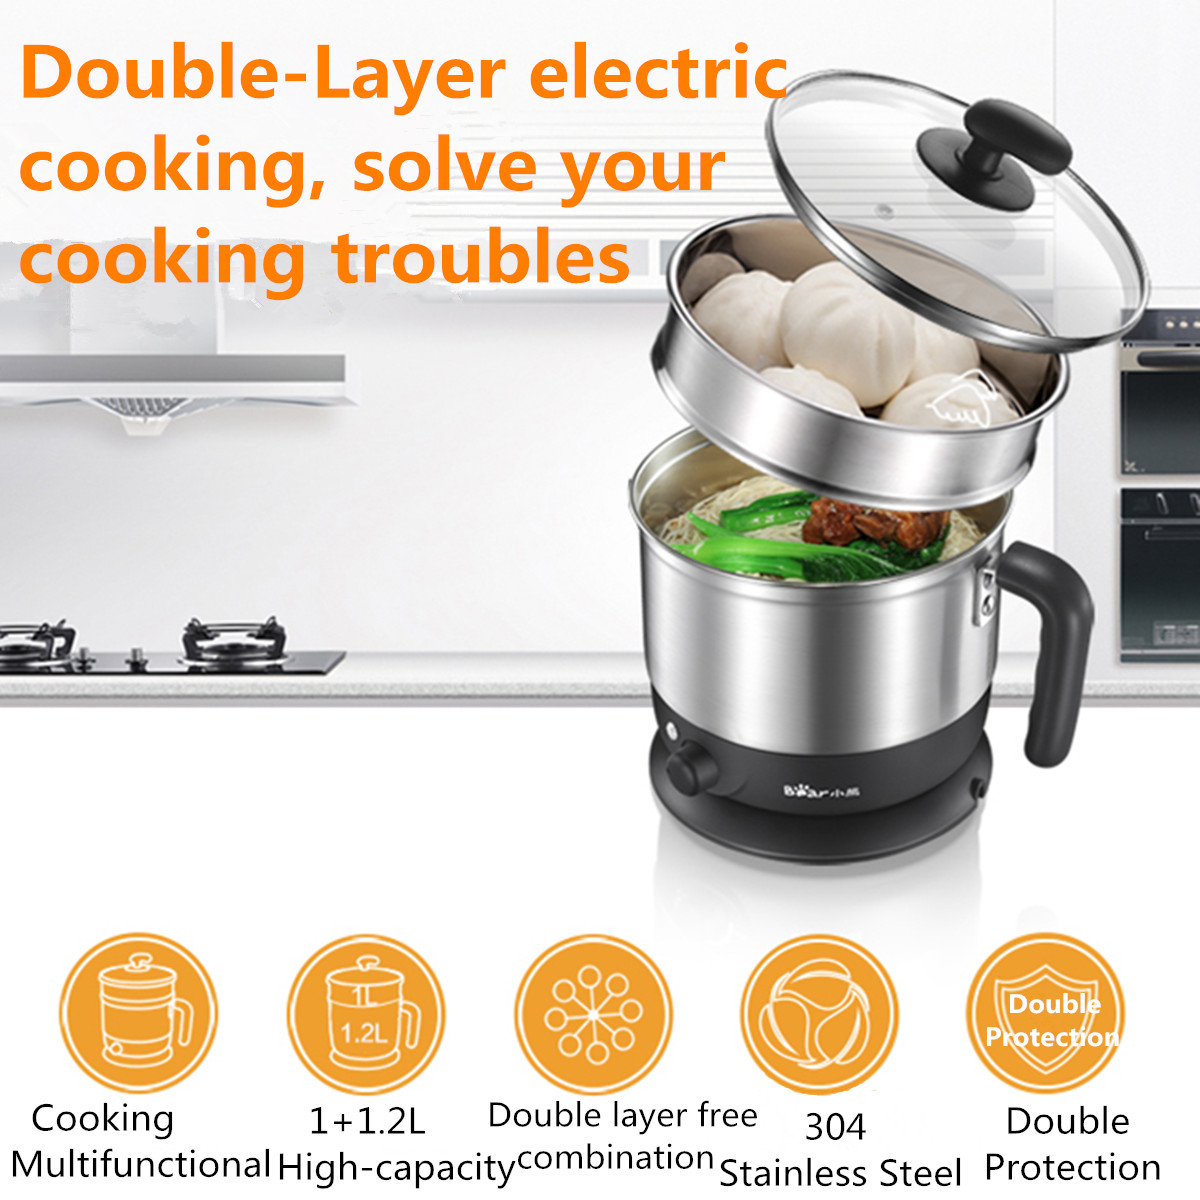 600W 2L Multi-function Electric Boiler Skillet Noodles Rice Cooker Thermal Double Layer Stainless Steel  Insulation Cooking Pot600W 2L Multi-function Electric Boiler Skillet Noodles Rice Cooker Thermal Double Layer Stainless Steel  Insulation Cooking Pot